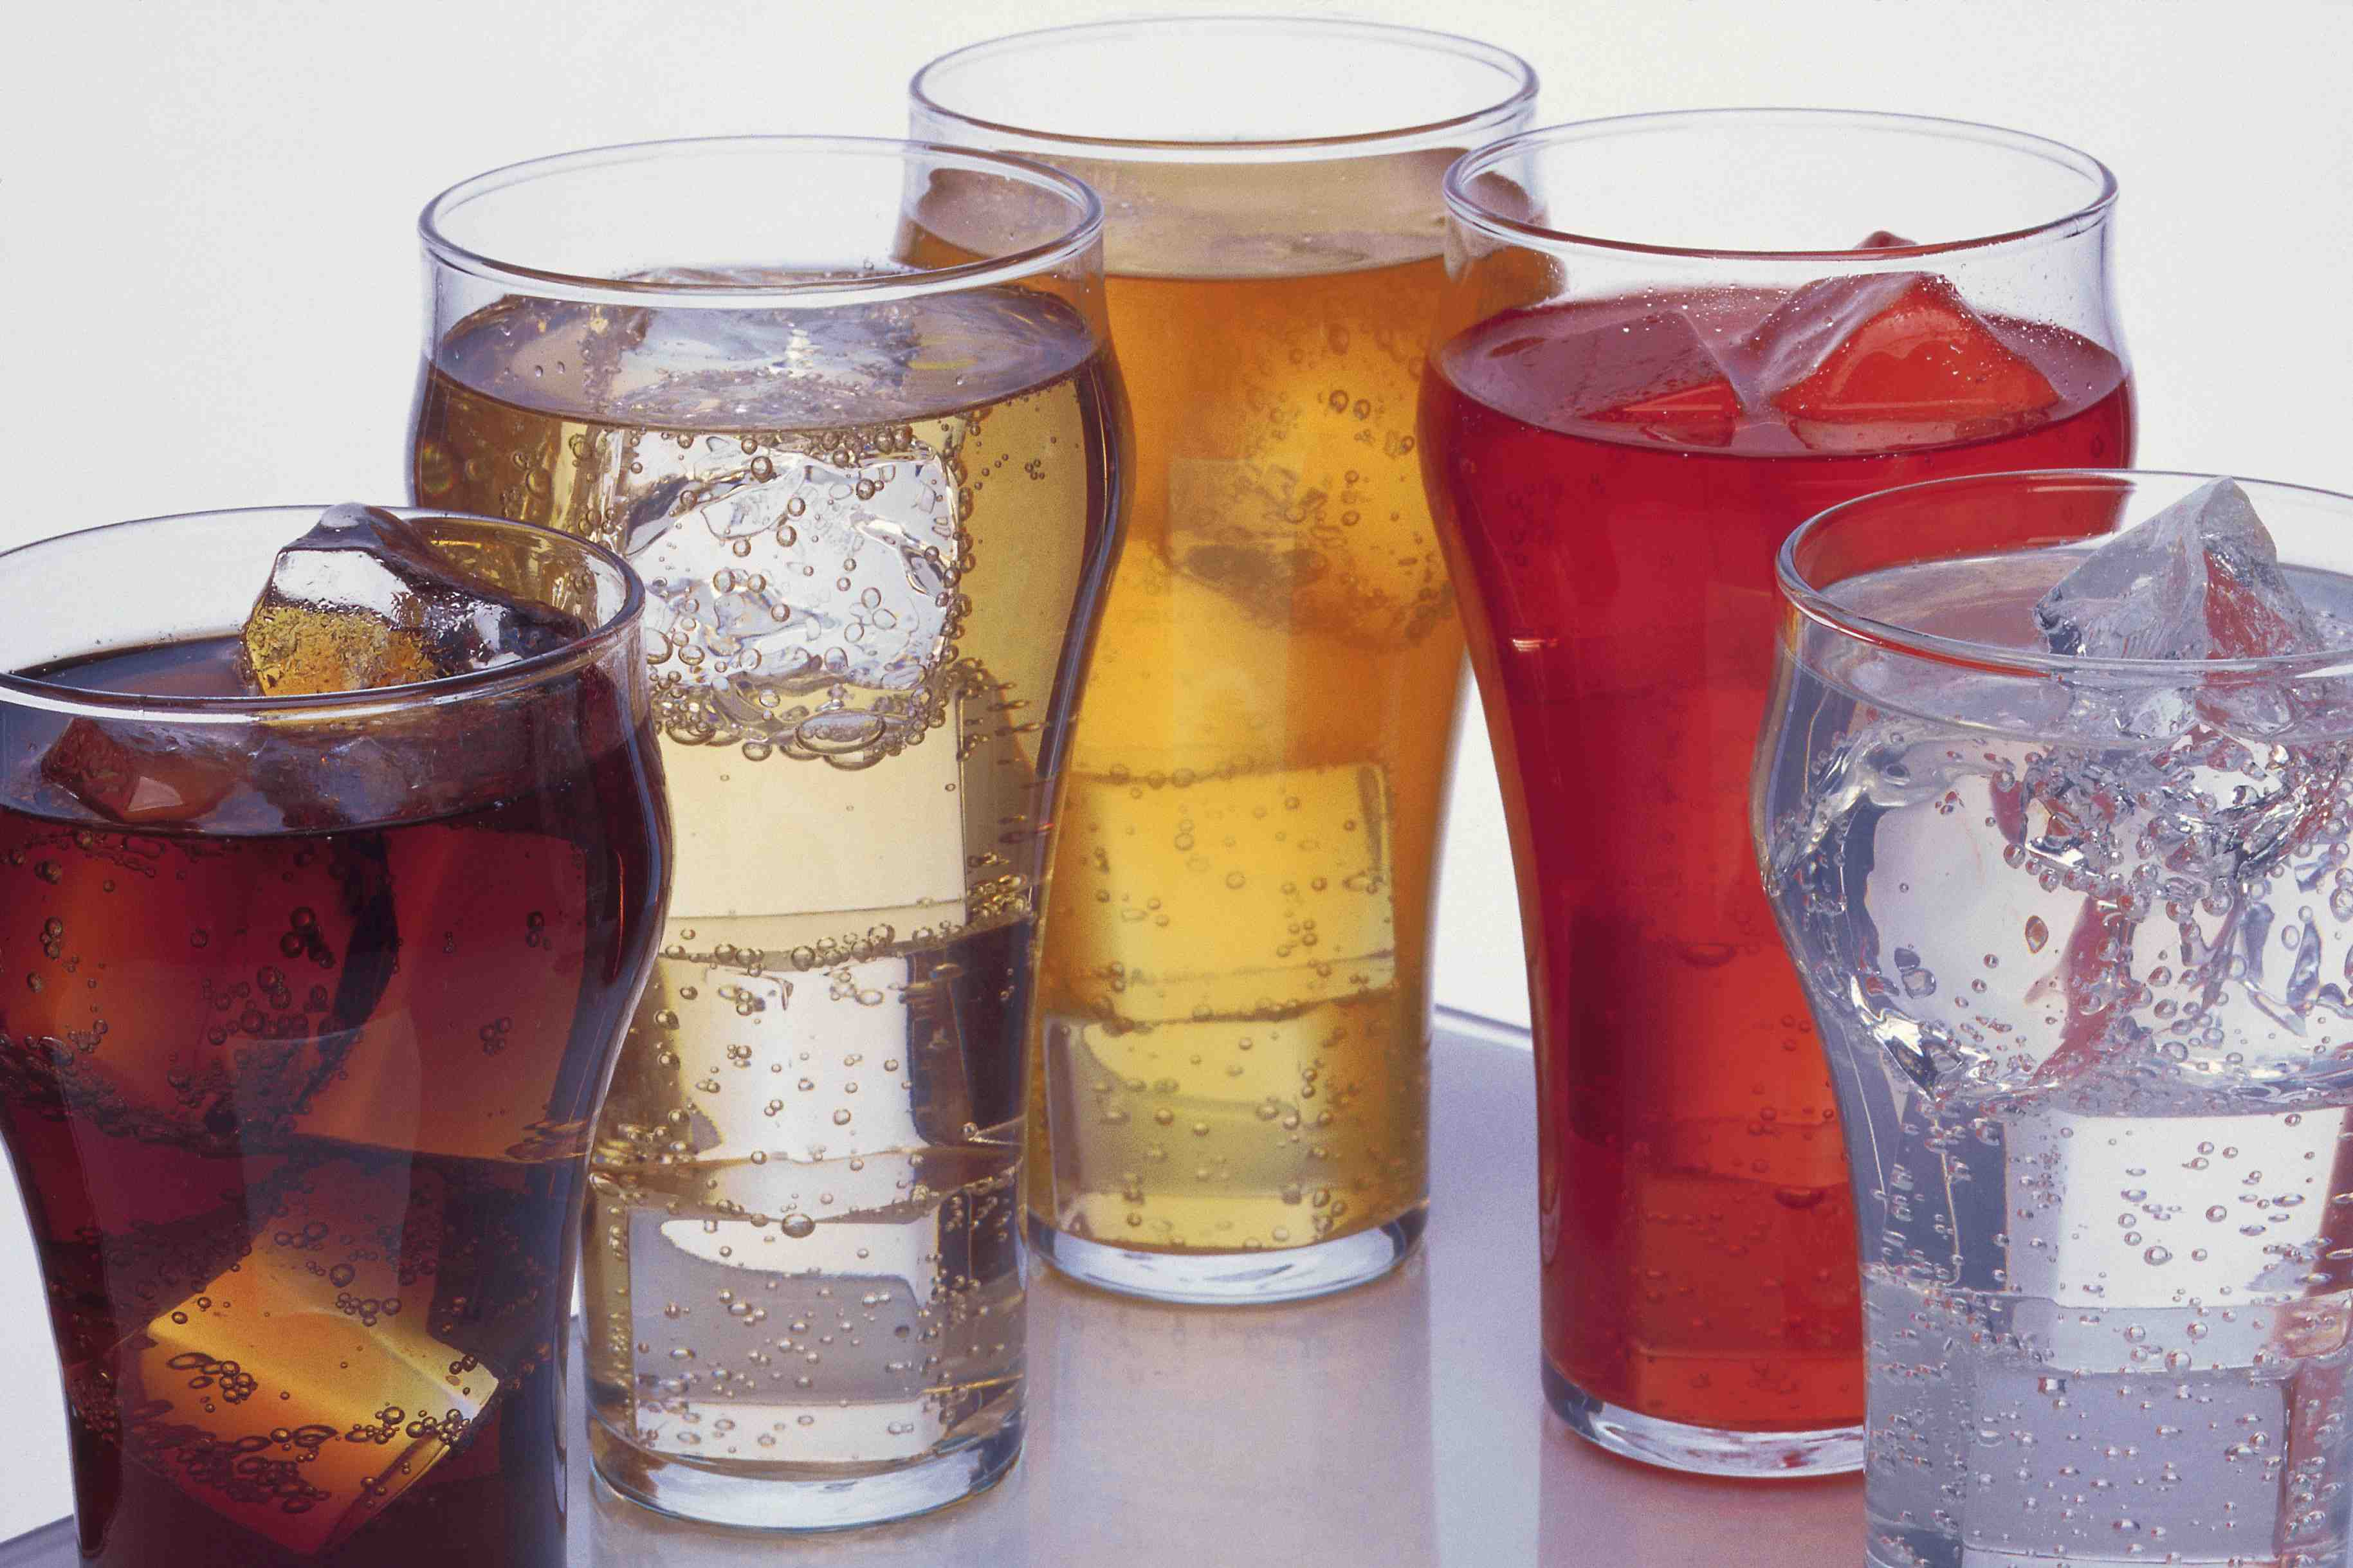 liquid diet before gastric bypass